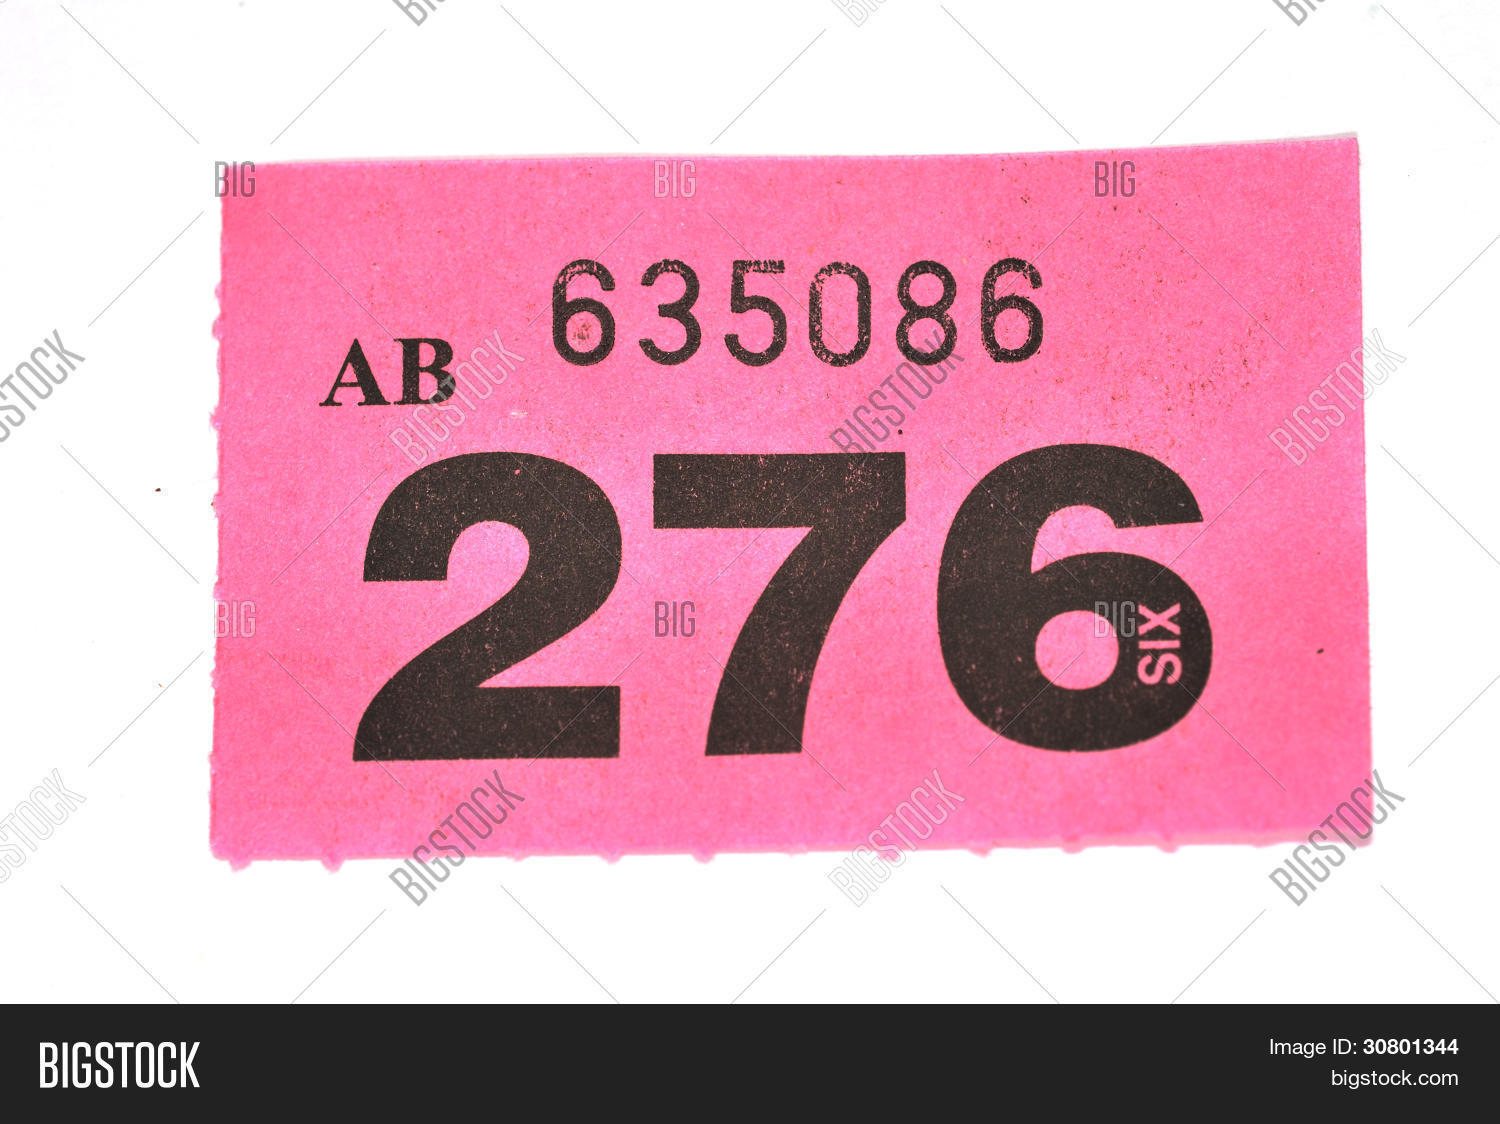 single purple raffle ticket stock photo stock images bigstock single purple raffle ticket